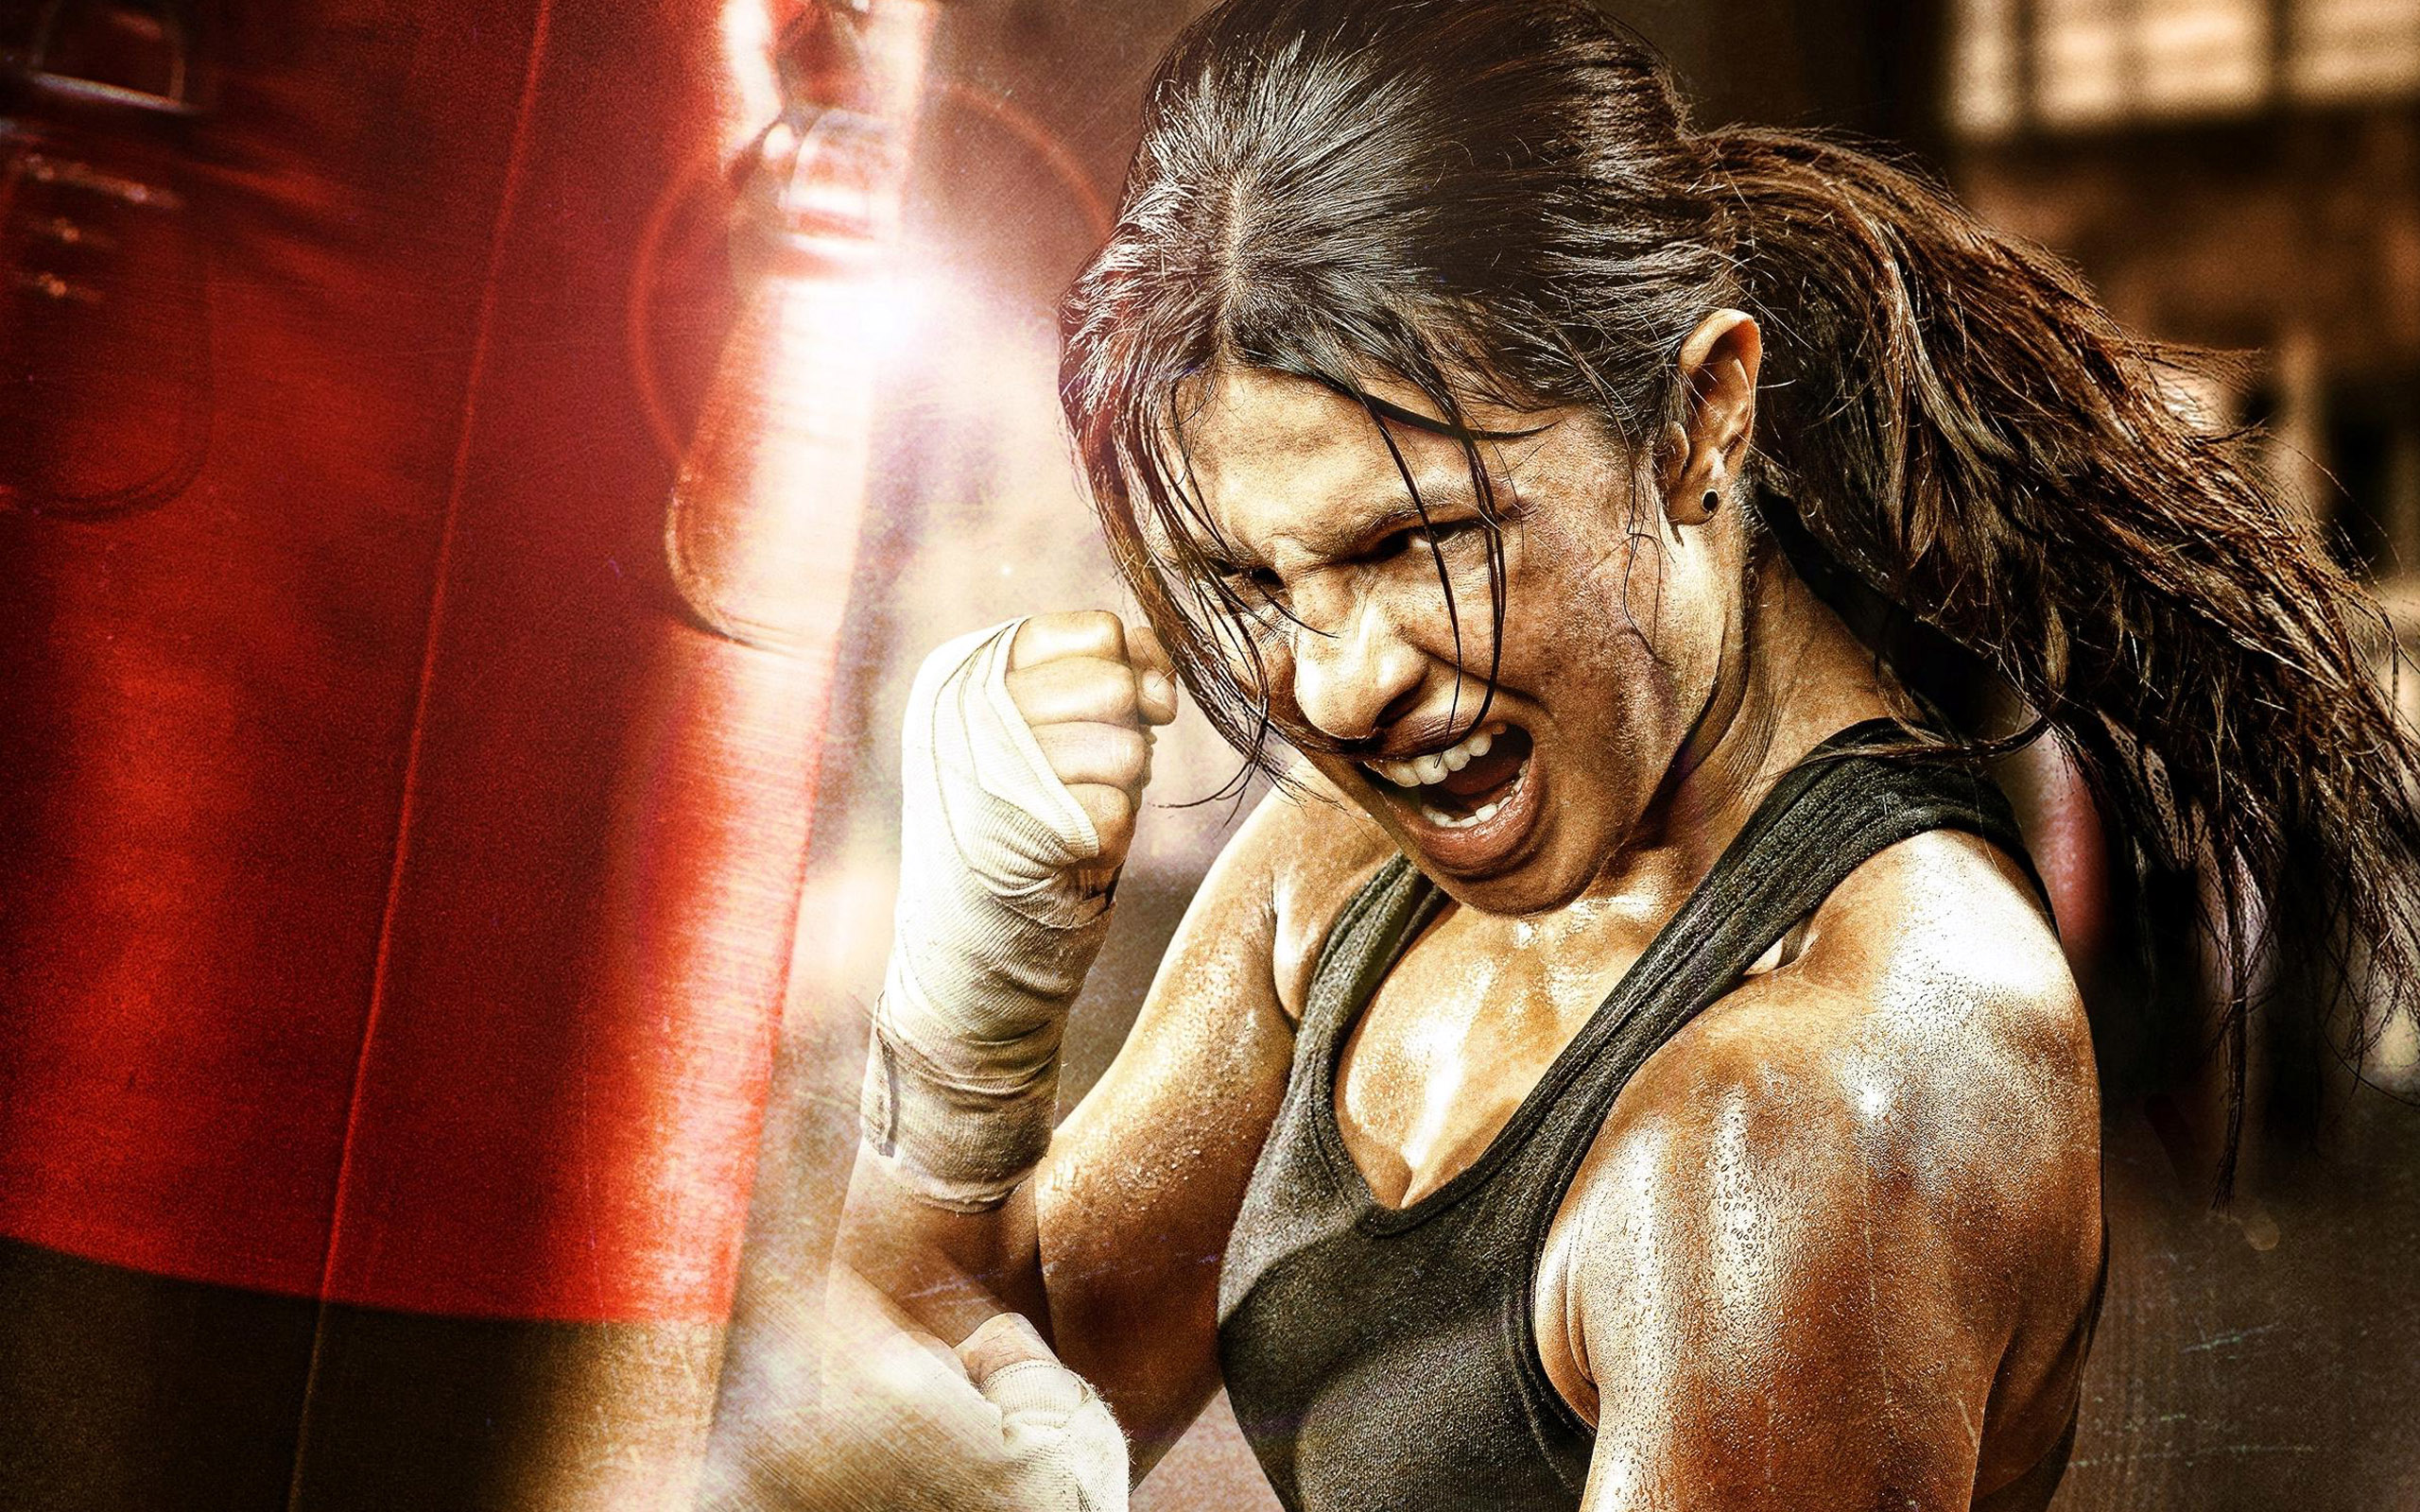 Mary Kom movie Releasing Details | Starring Priyanka Chopra